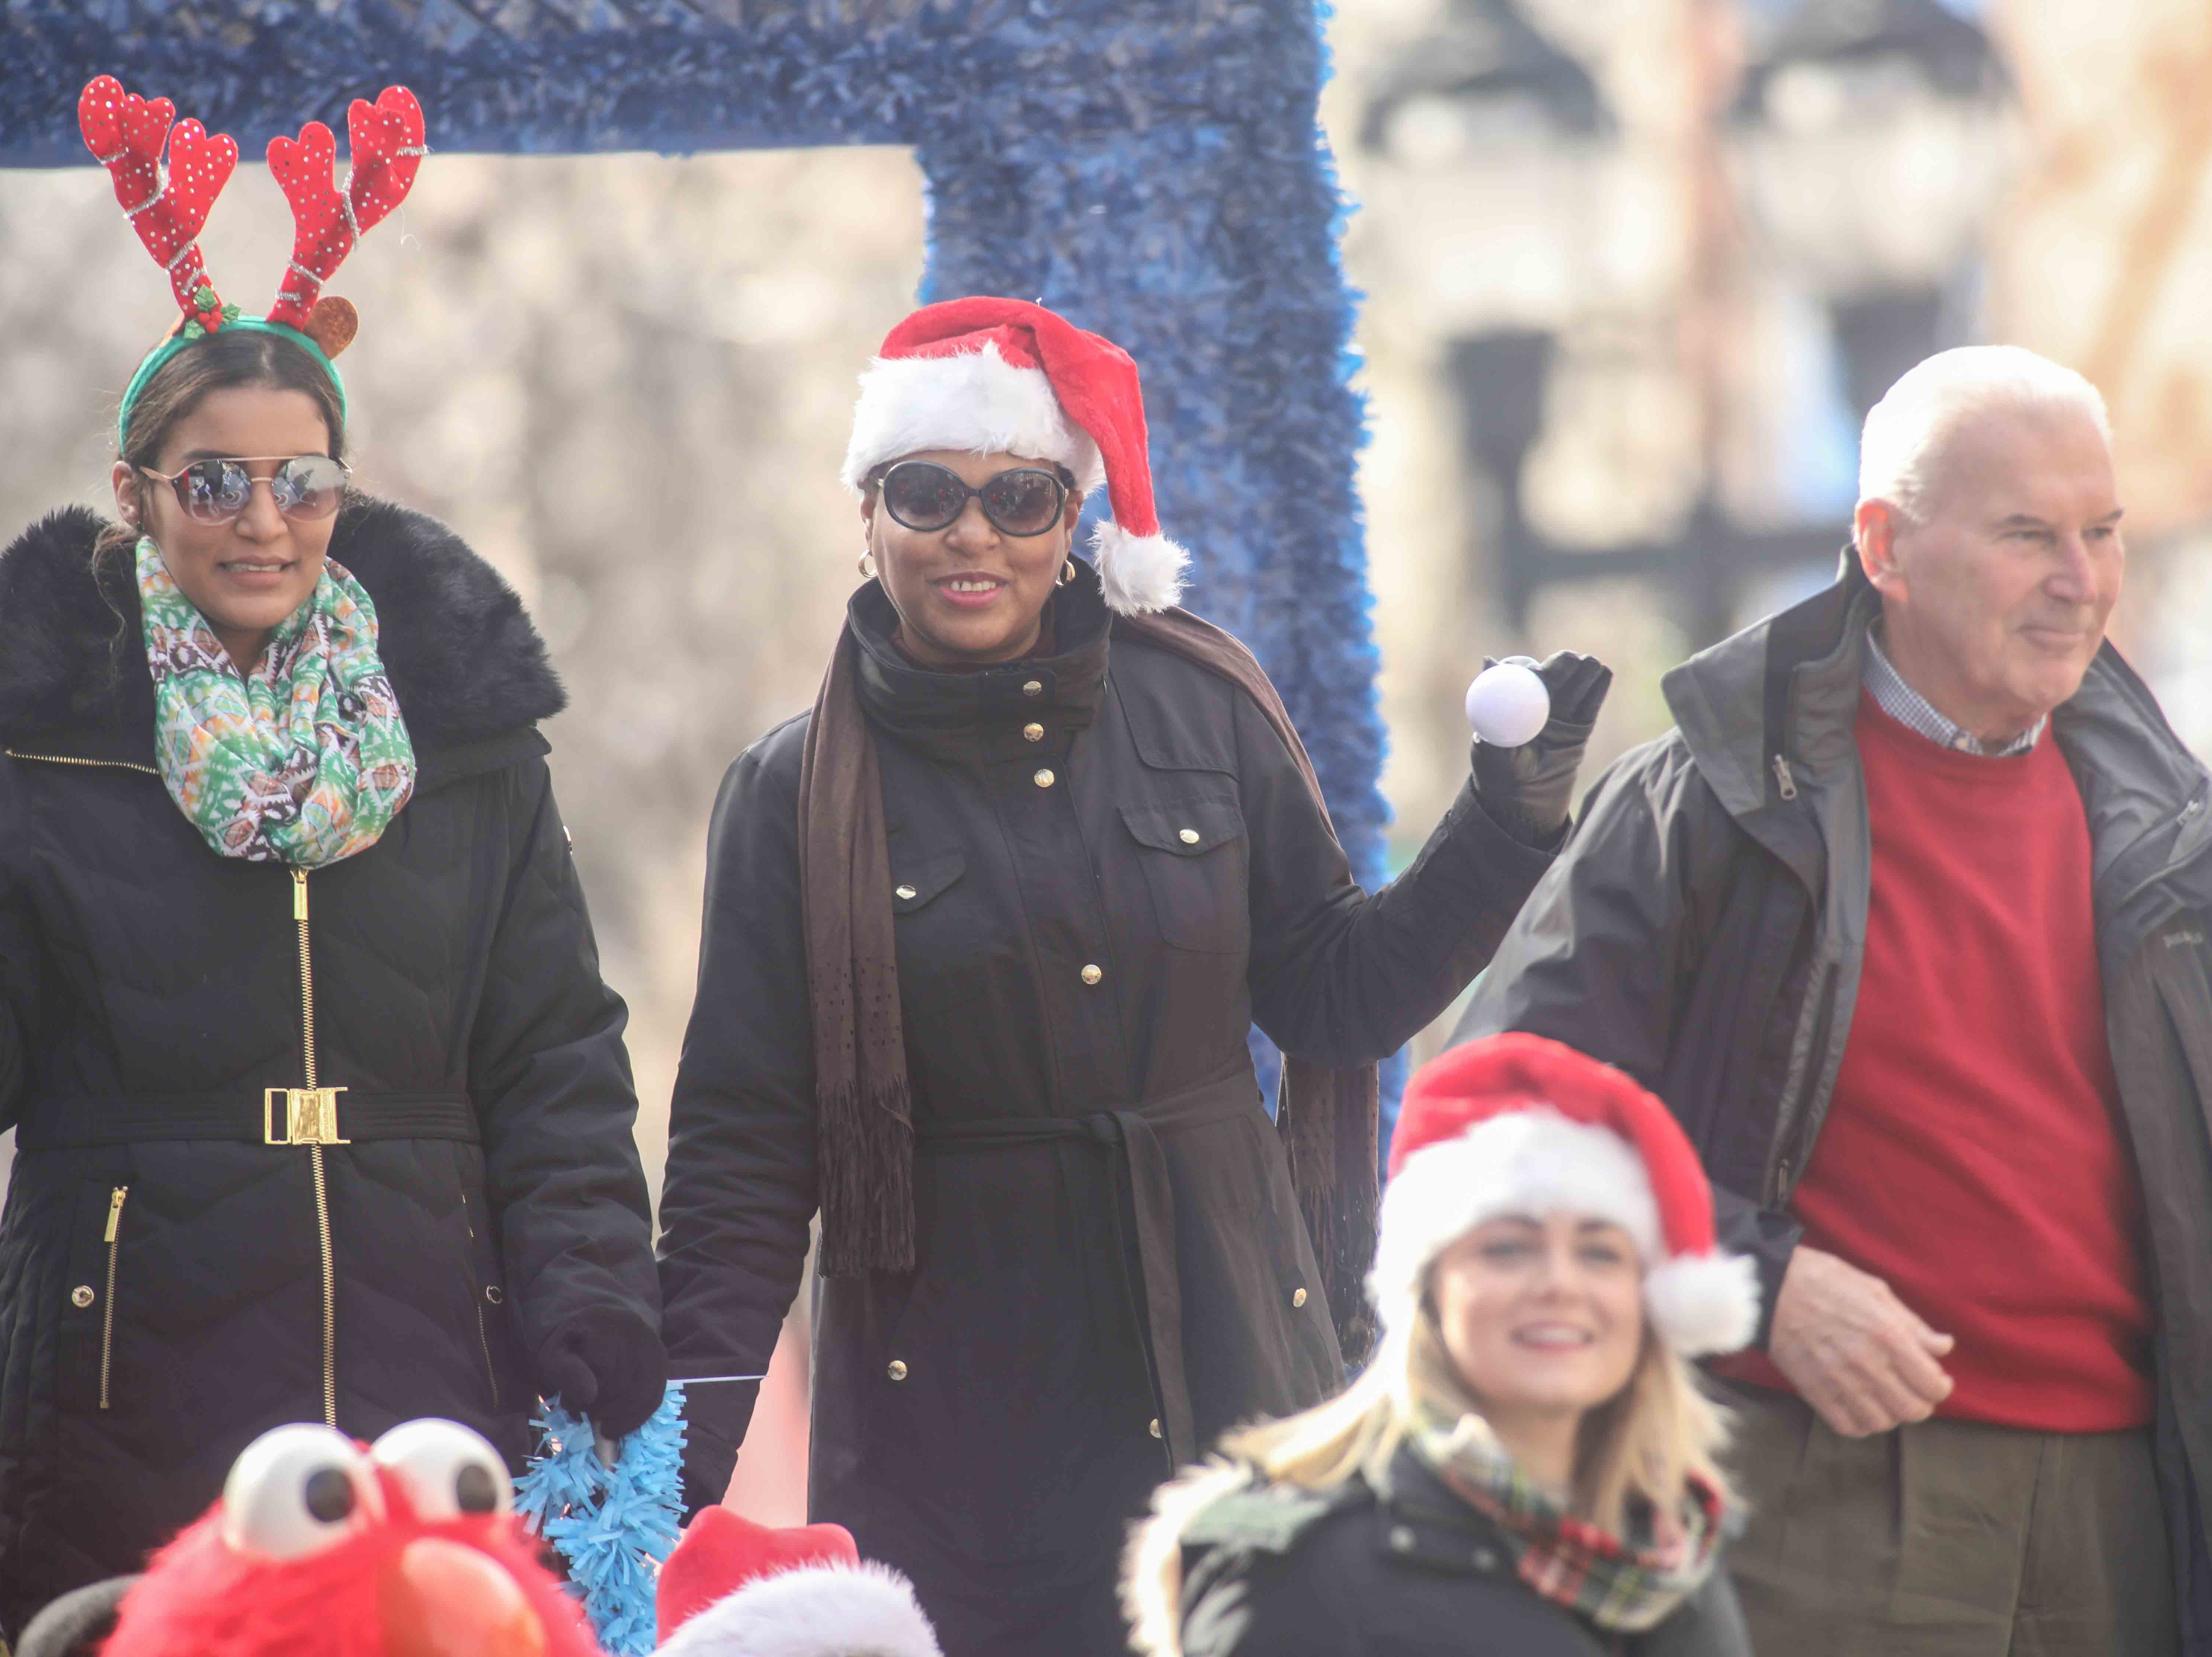 From Left: Tanya Washington Chief of Staff, Mayor Michael S. Purzycki waves to spectators during the Wilmington Jaycees 55th Annual Christmas Parade along Market Street Saturday, Nov. 24, 2018, in Wilmington, Delaware.